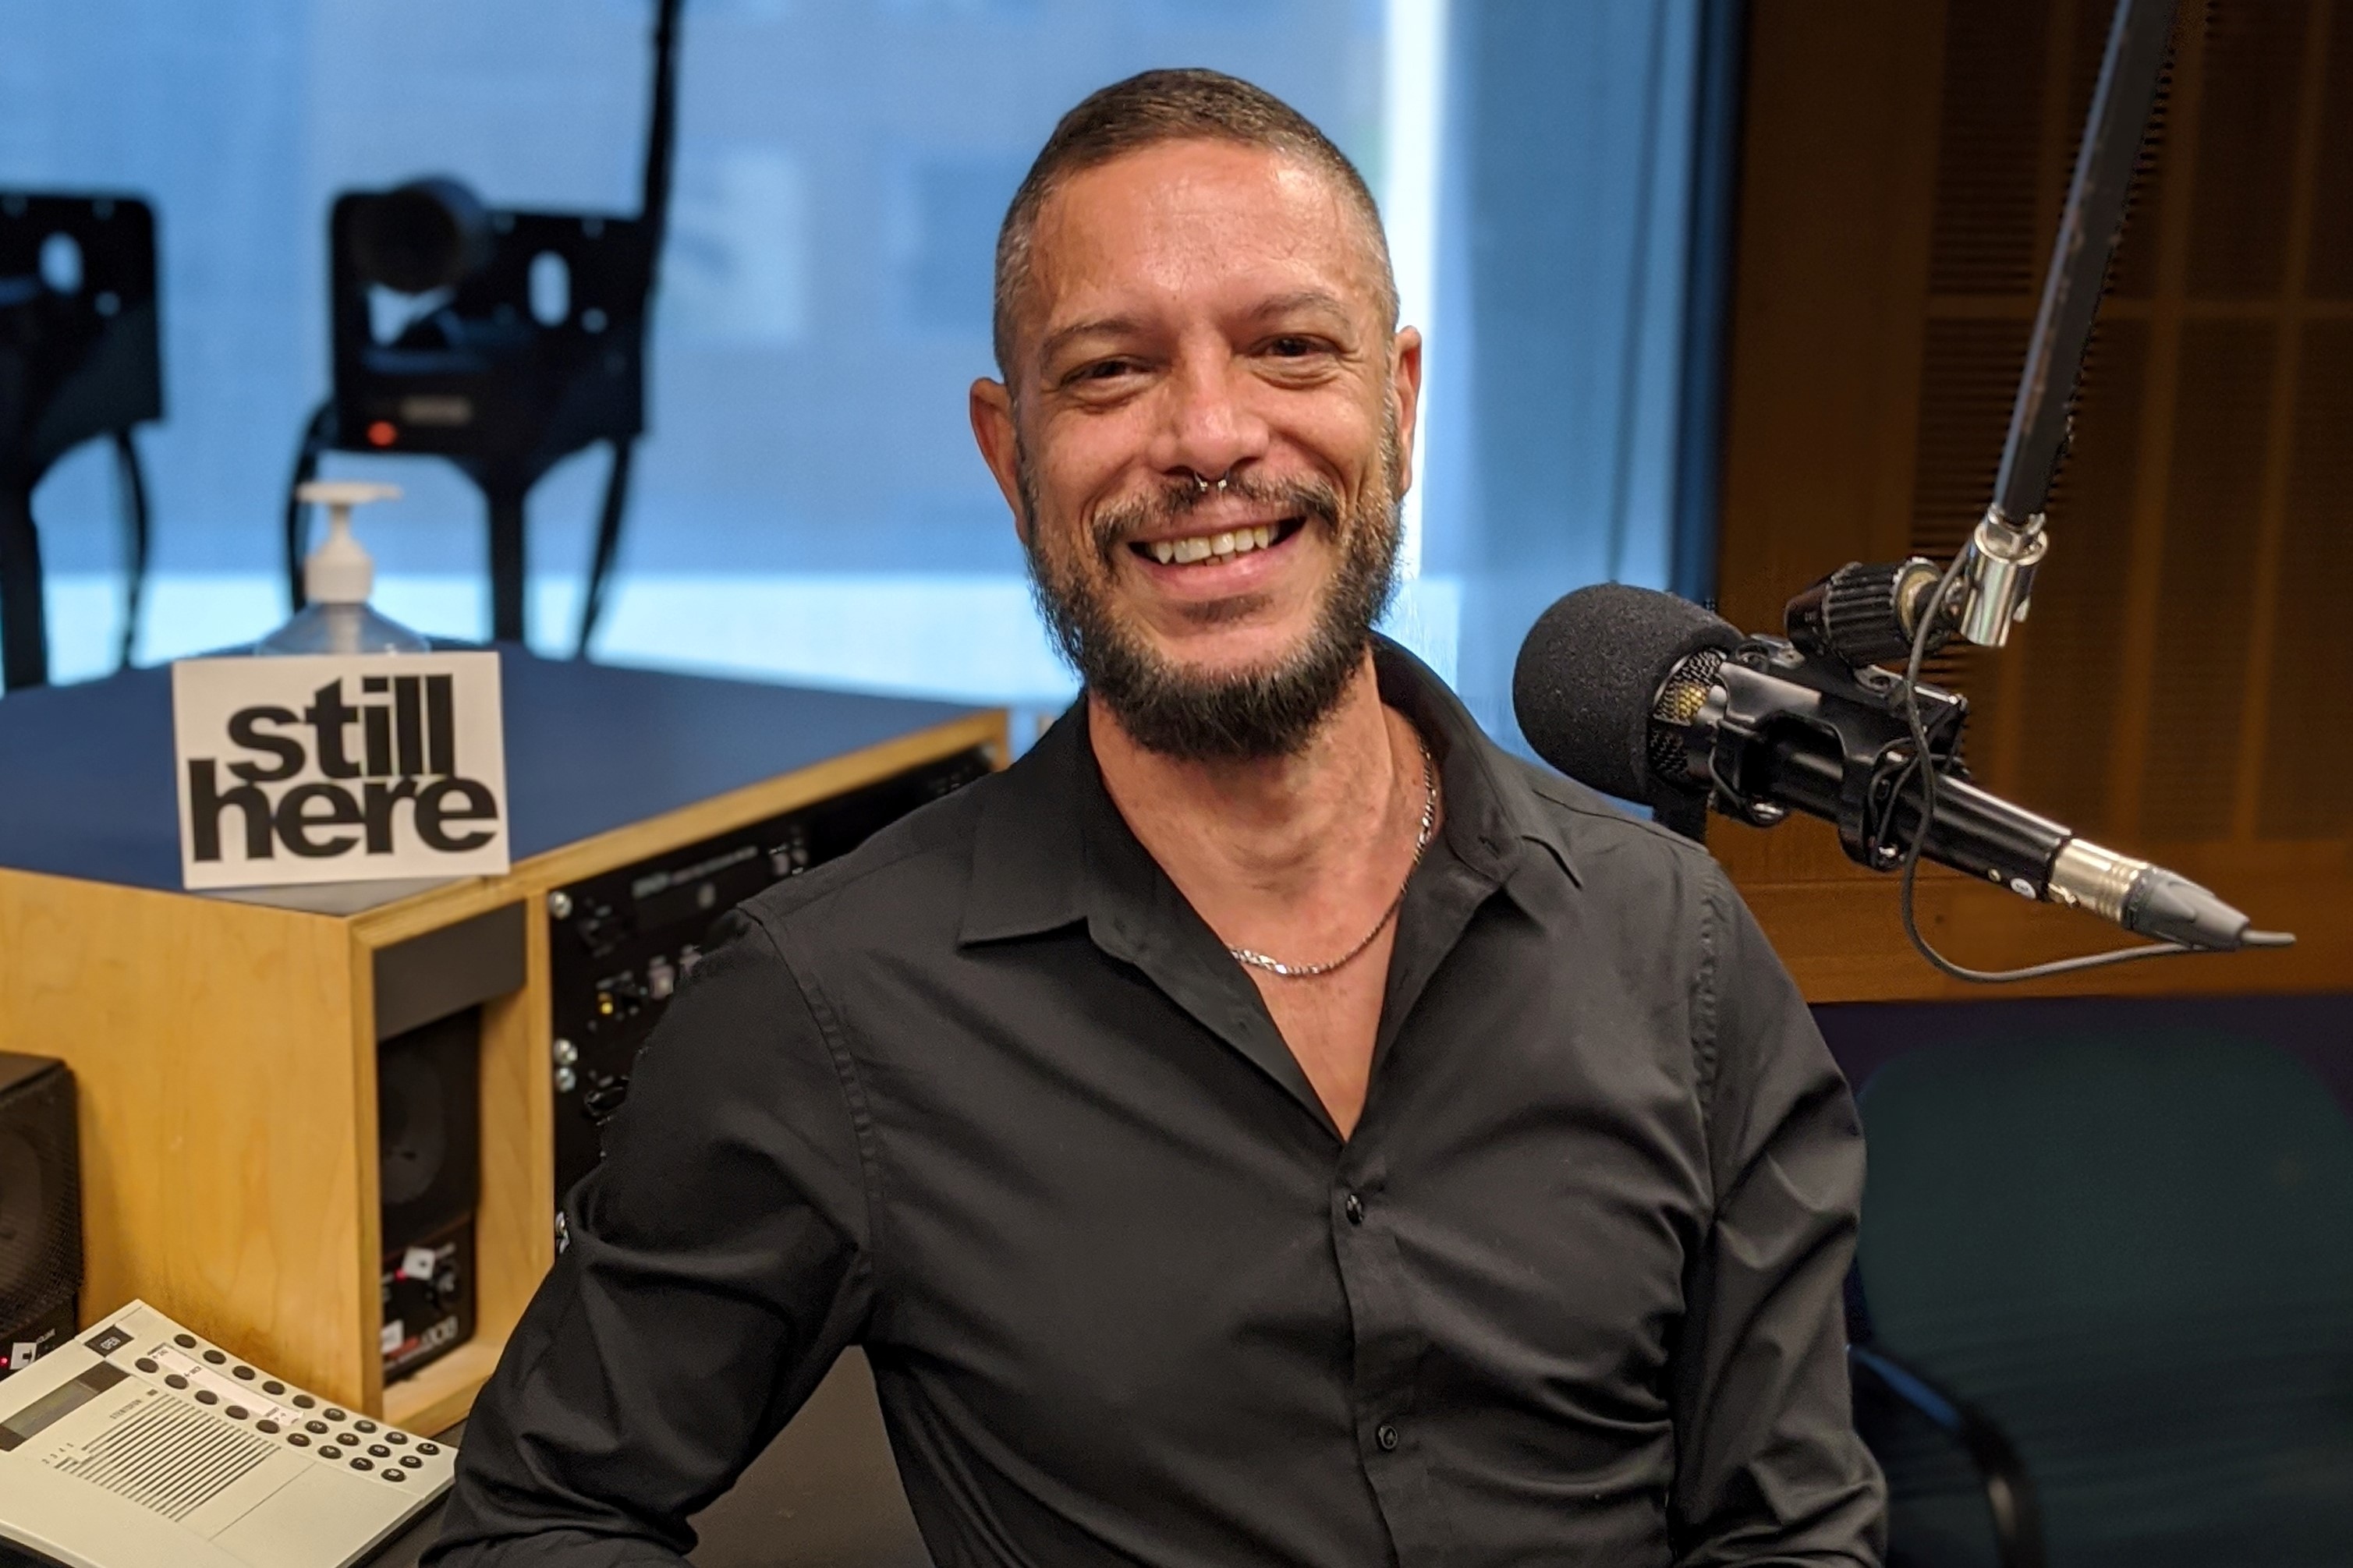 An Aboriginal man in his late 40s in a black shirt sitting in a radio studio and smiling